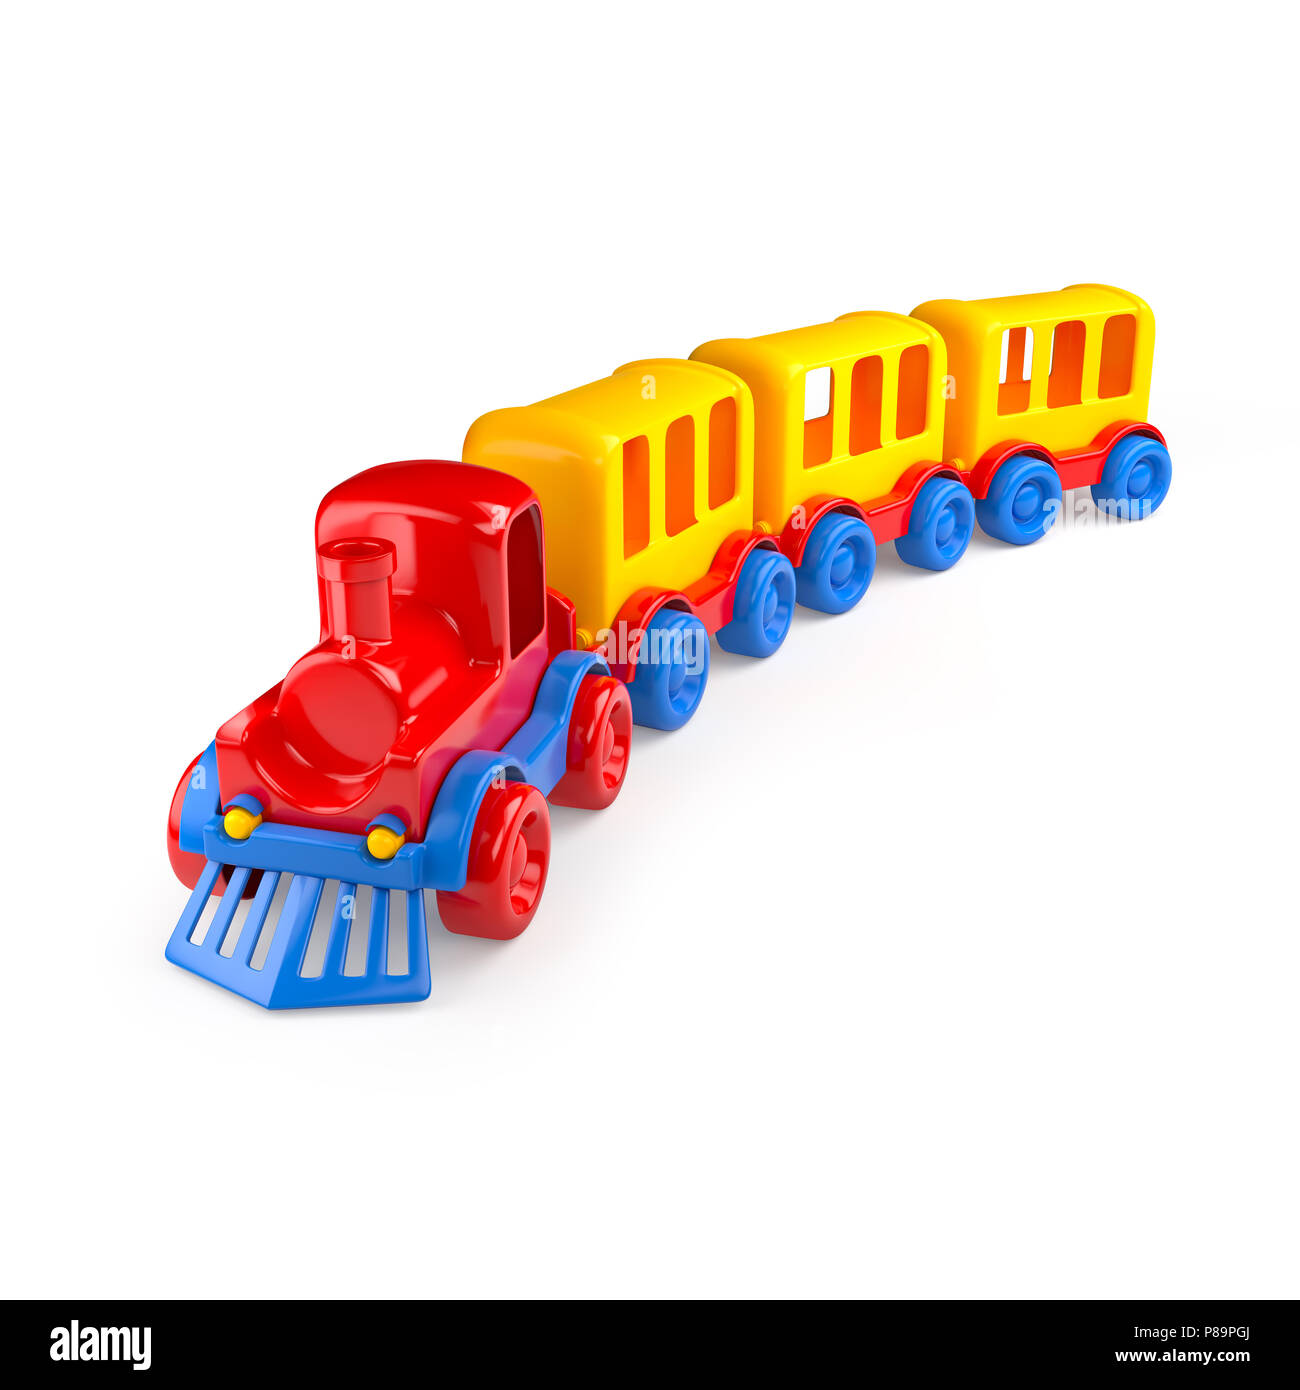 Train Stock Photo